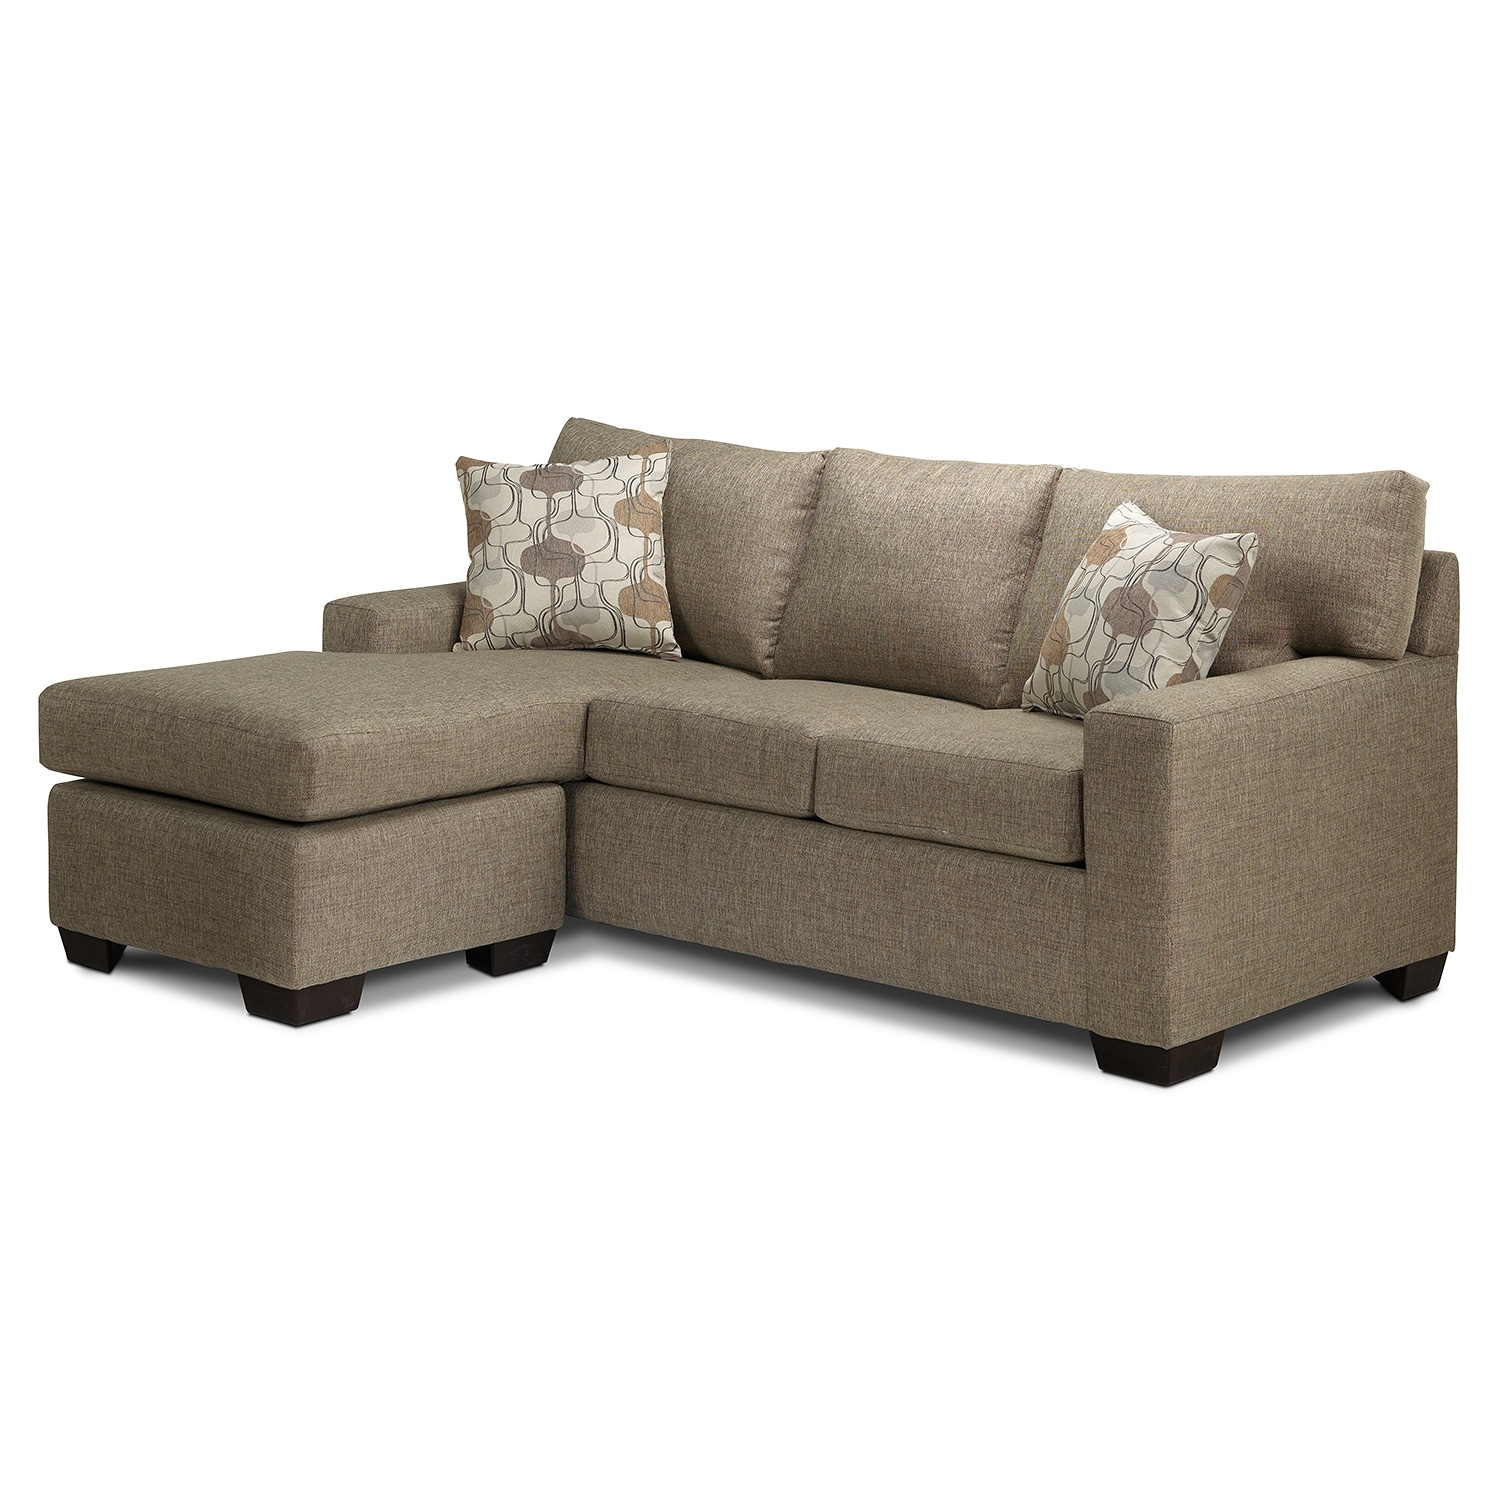 Sofa Bed With Chaise Kendall sofabed w/ chaise - granite sand leon's